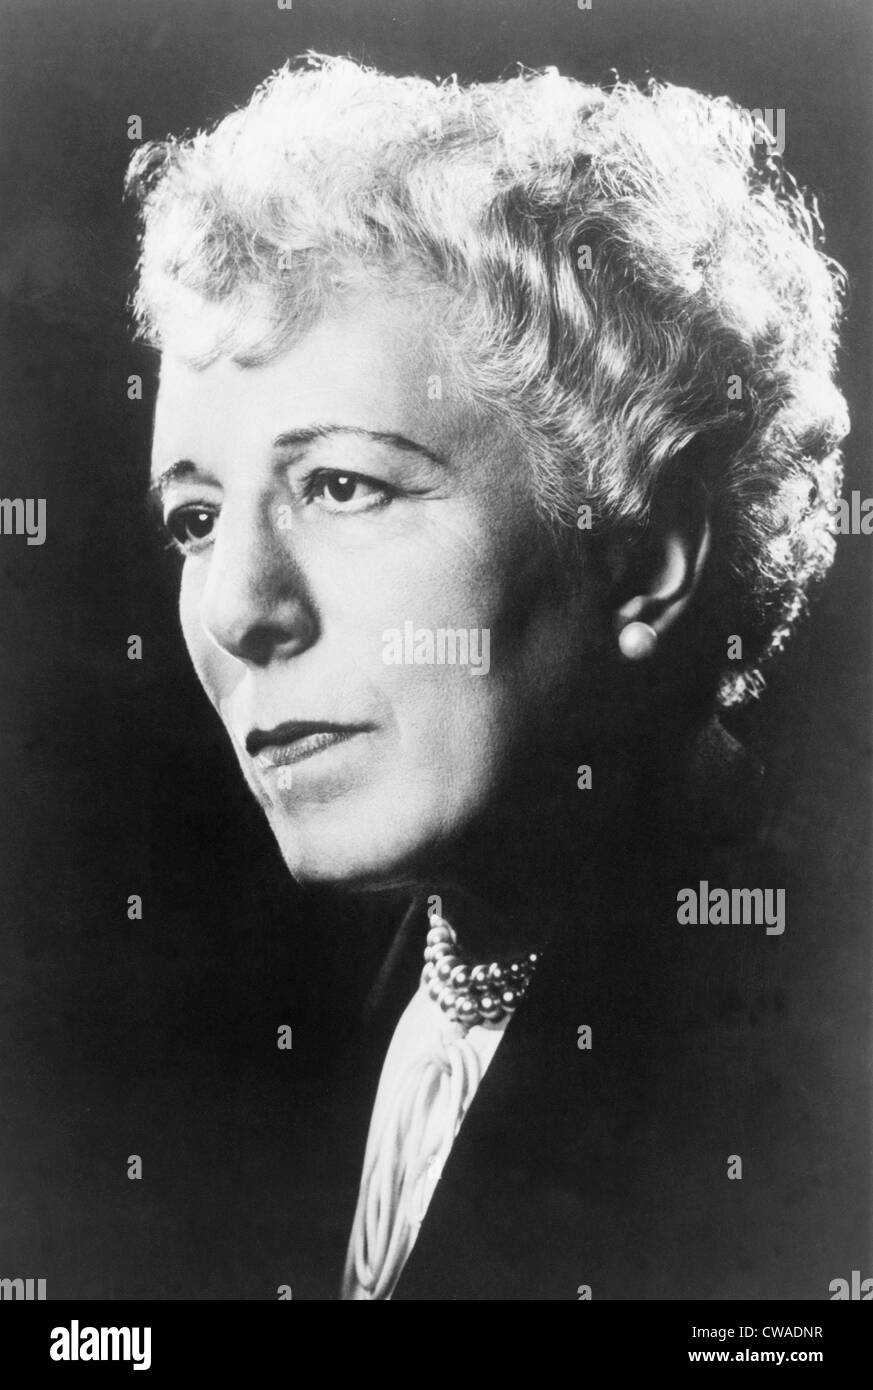 Edna Ferber 1887 1968 American Novelist And Short Story Writer Had An Active